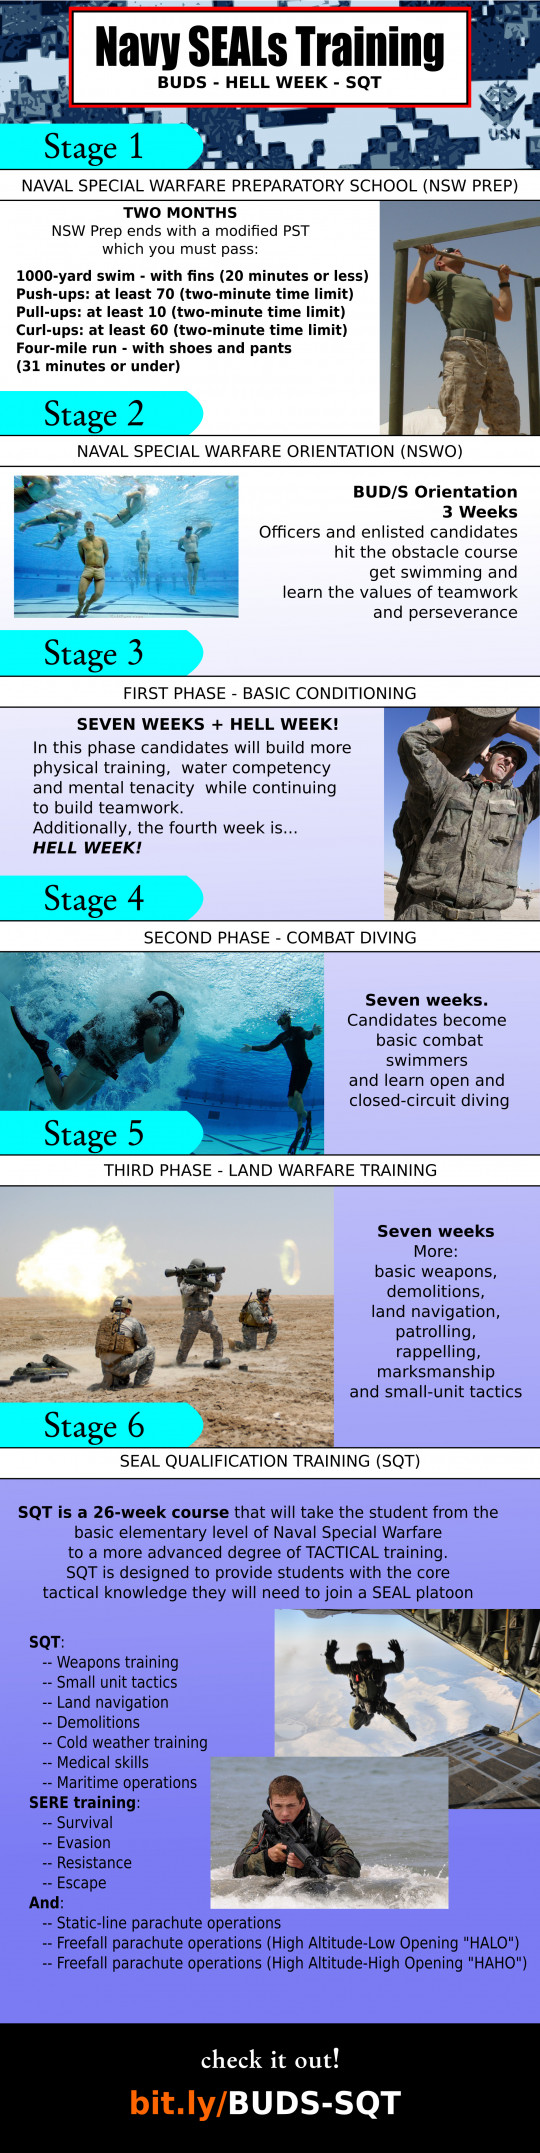 Navy SEALs Training - BUDS - HELL WEEK - SQT